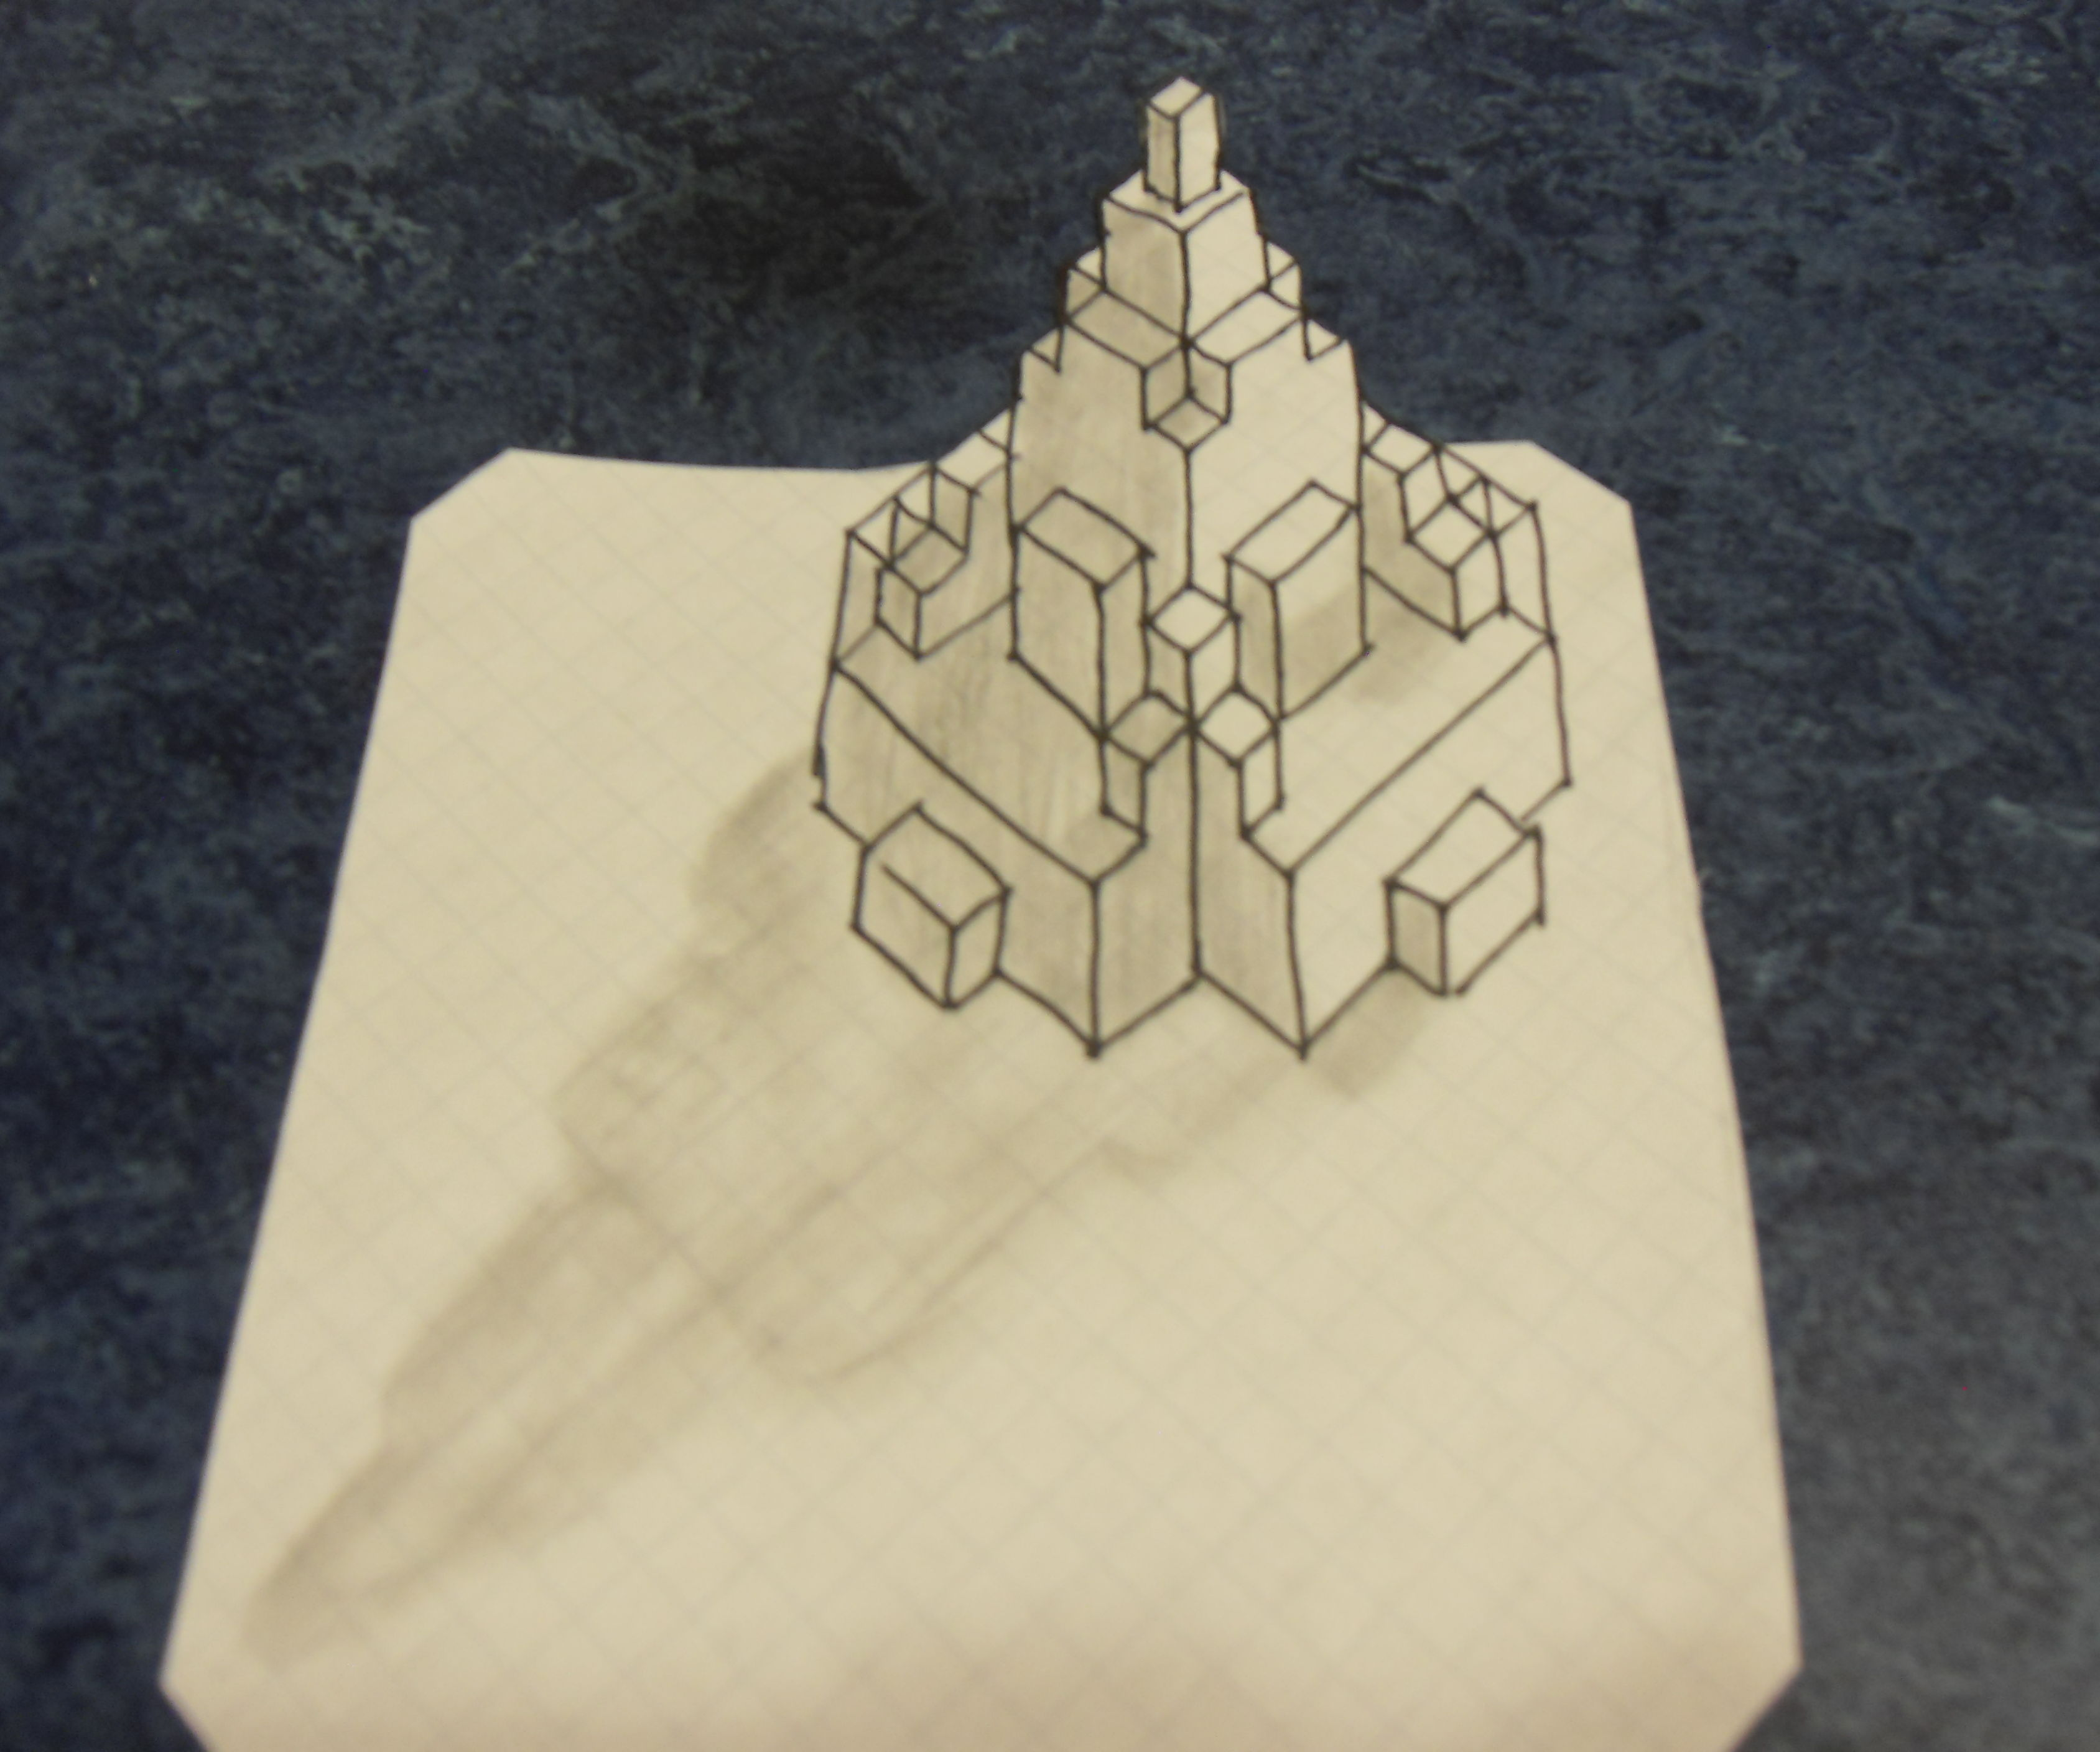 3D Buildings on grid paper!